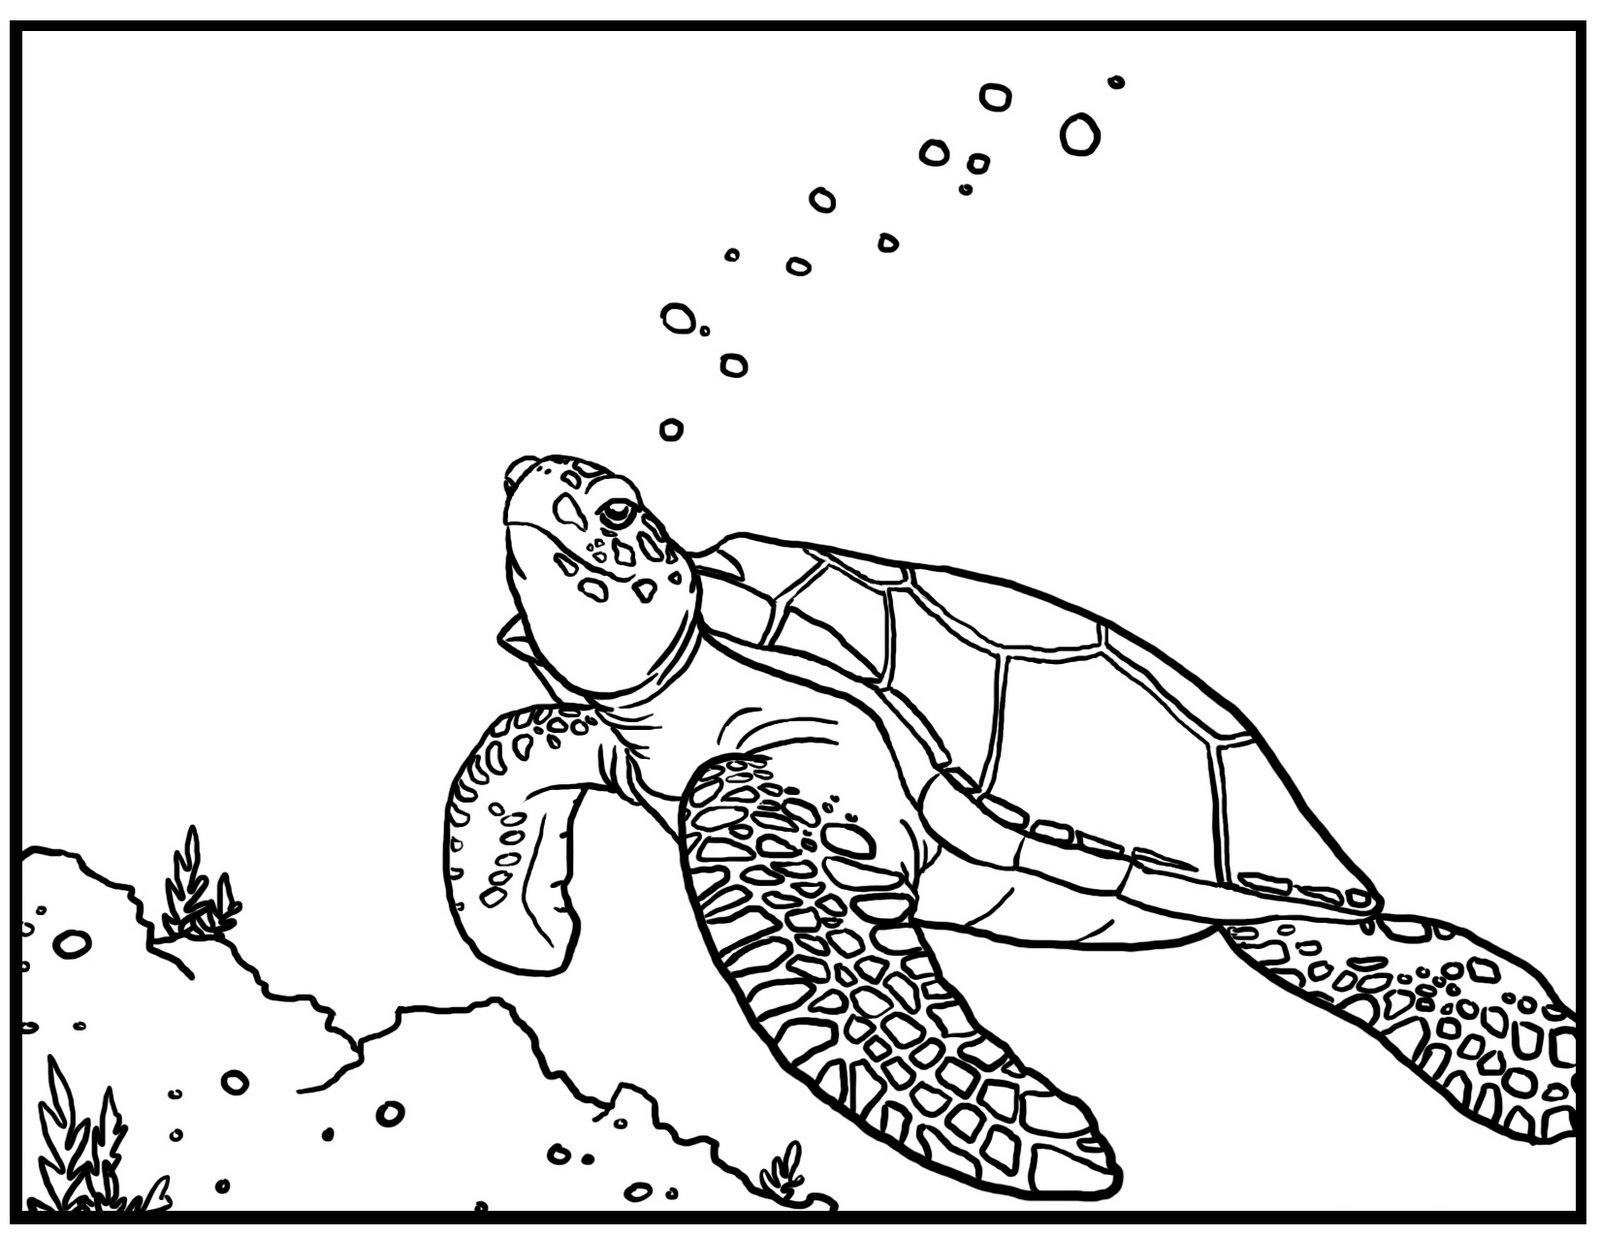 1600x1236 Sea Turtle Coloring Page Free Bell Rehwoldt To Print